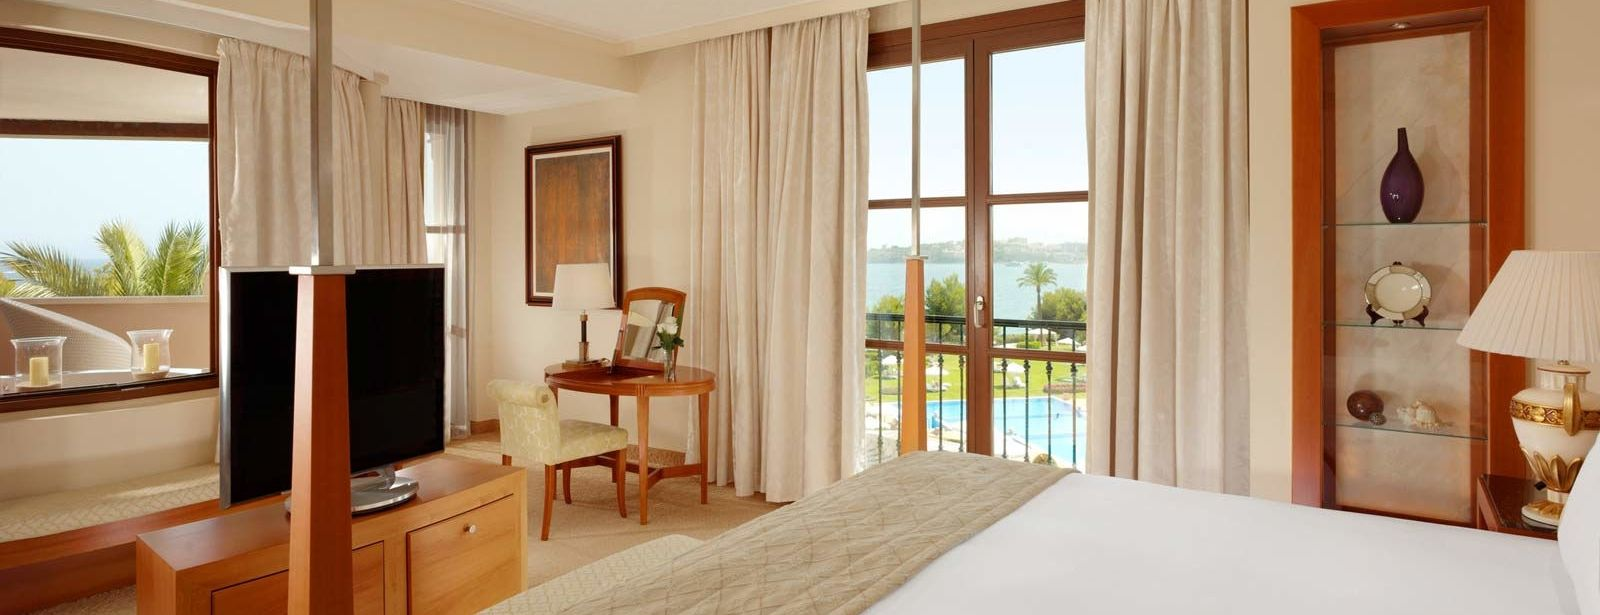 Mardavall Diamond Suite | The St. Regis Mardavall Mallorca Resort